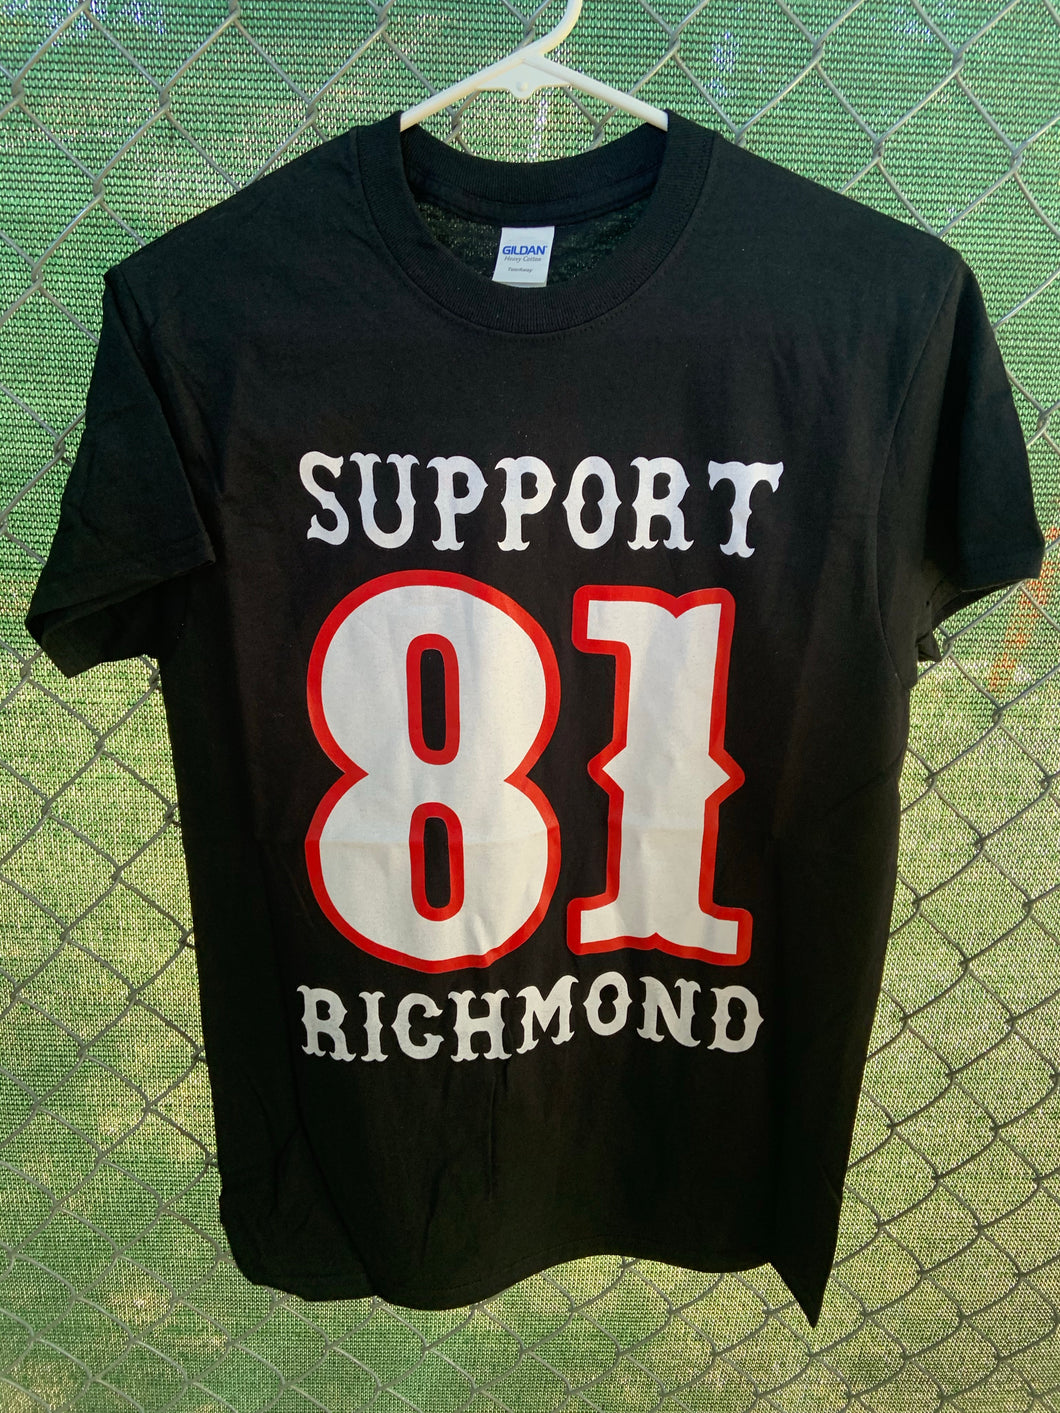 Men's black sleeve shirt with big support 81 richmond on front